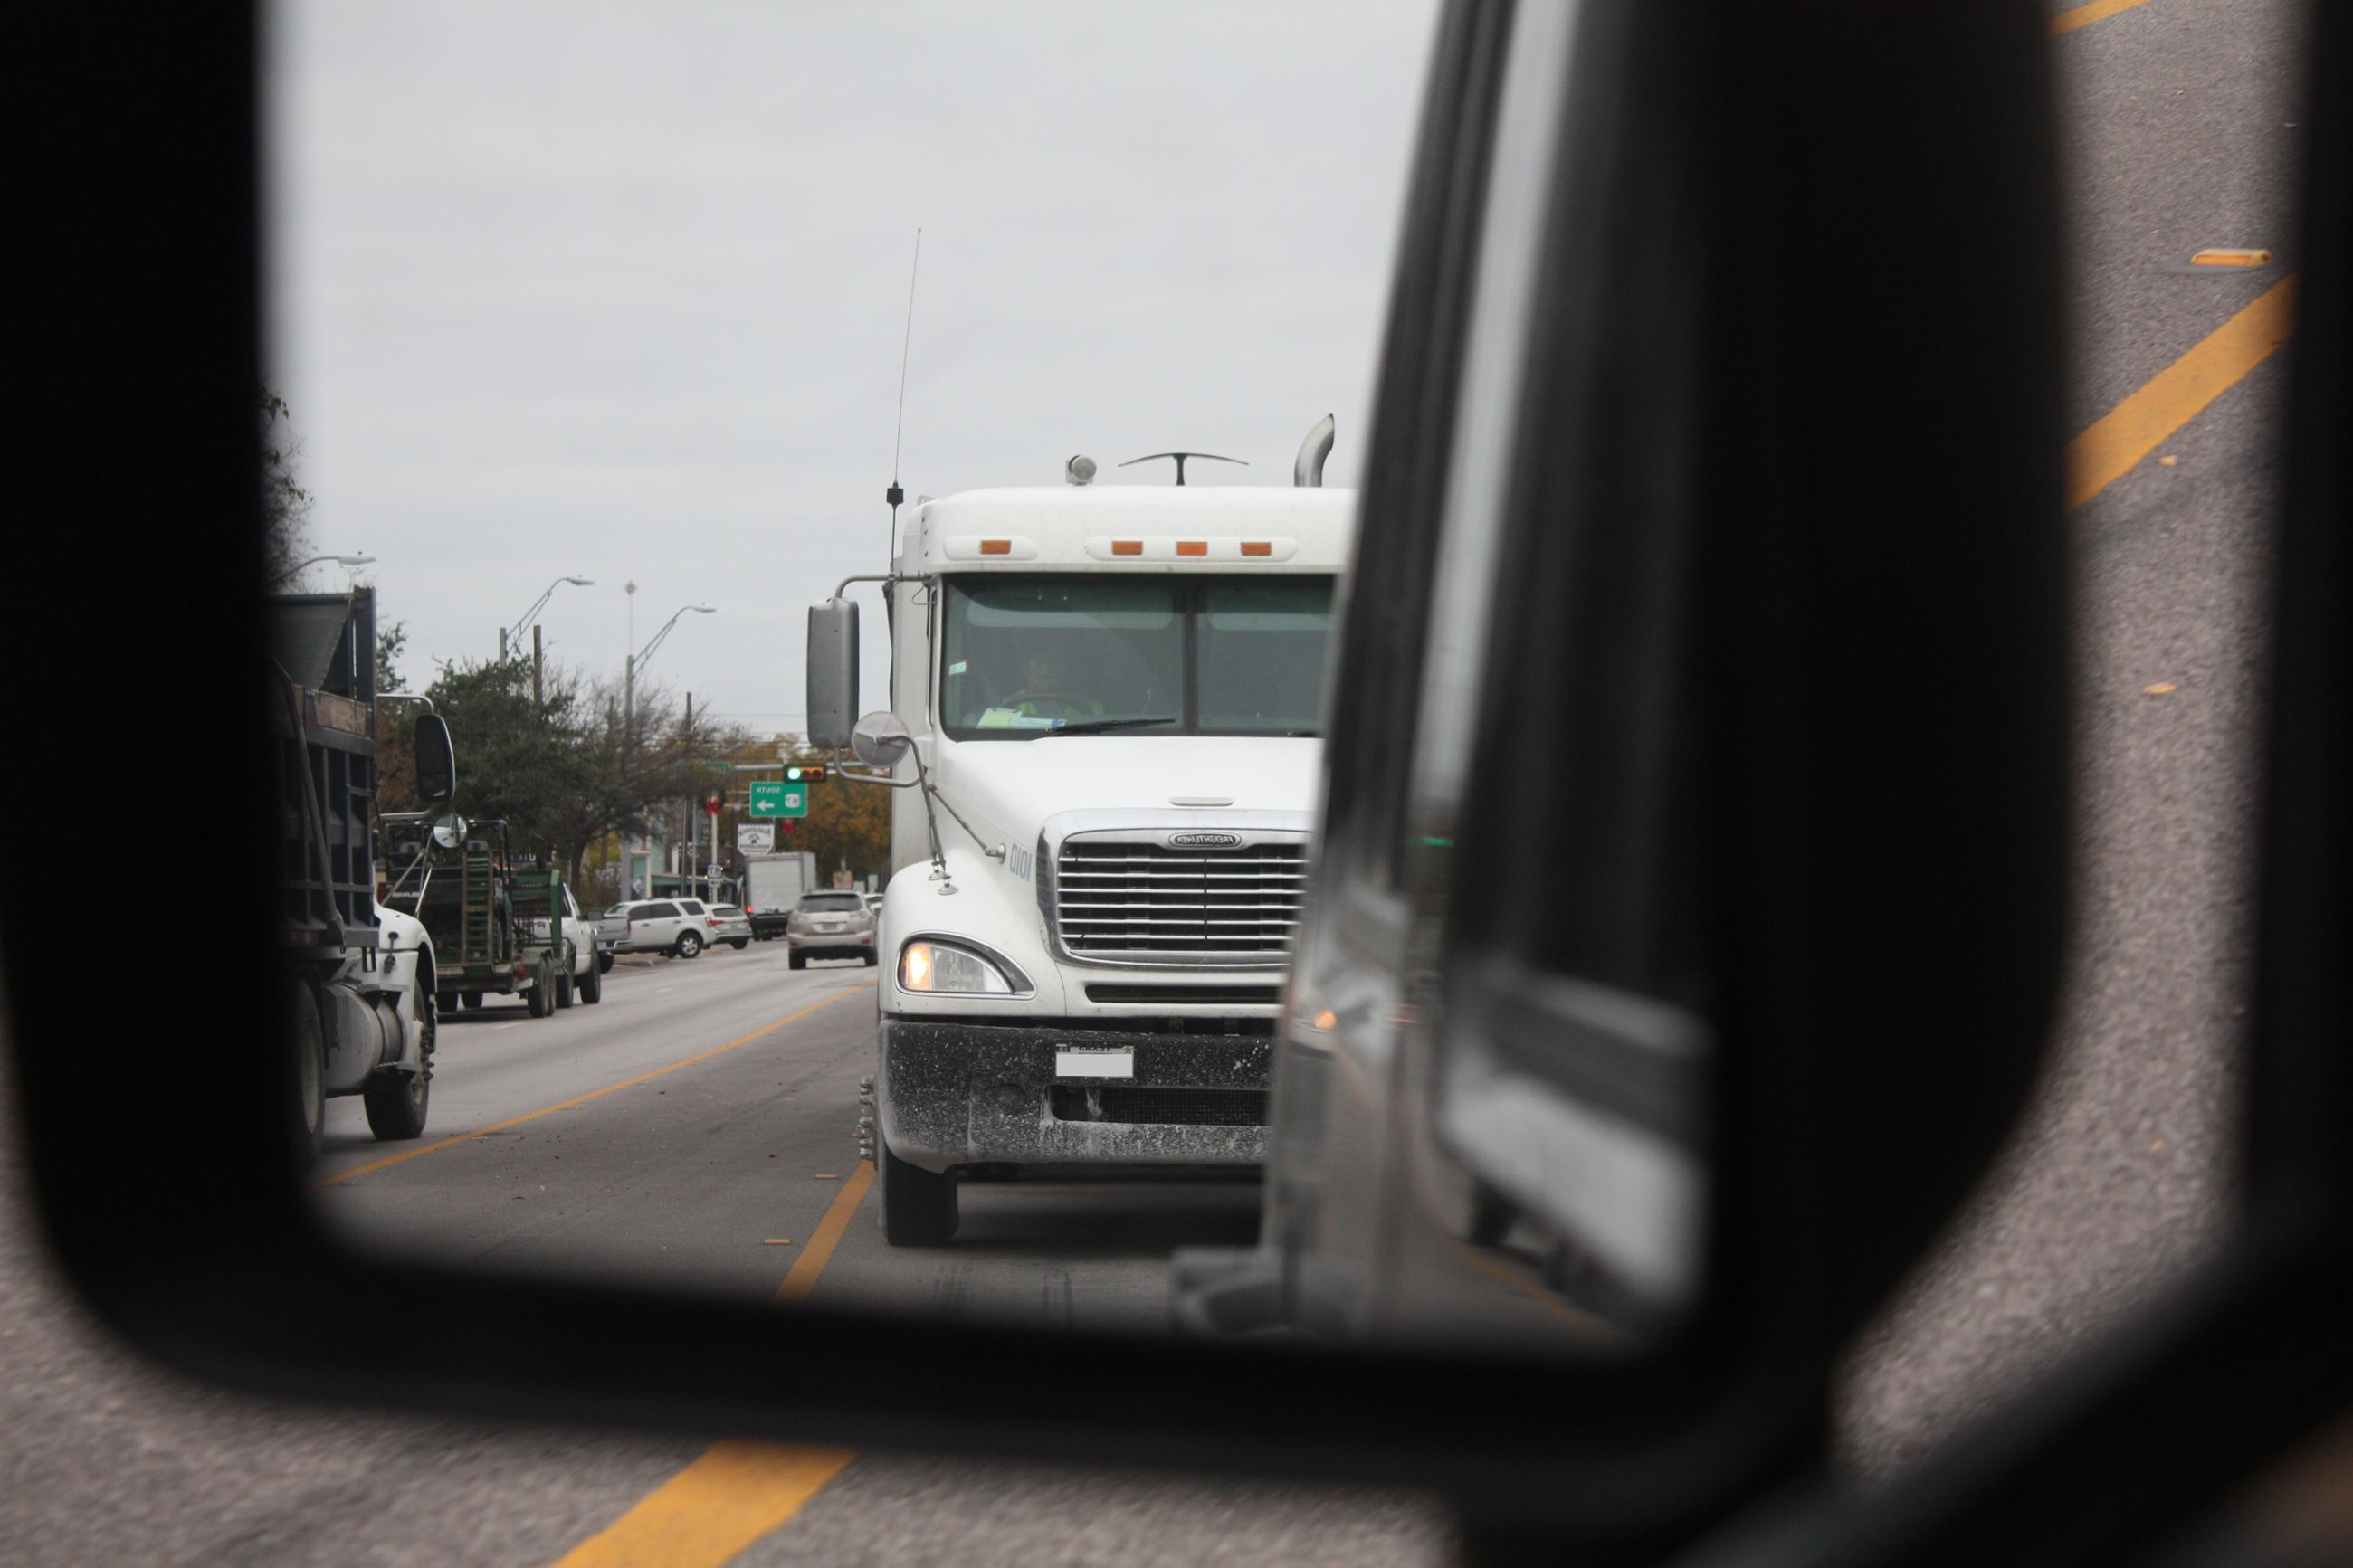 Truck in side view mirror